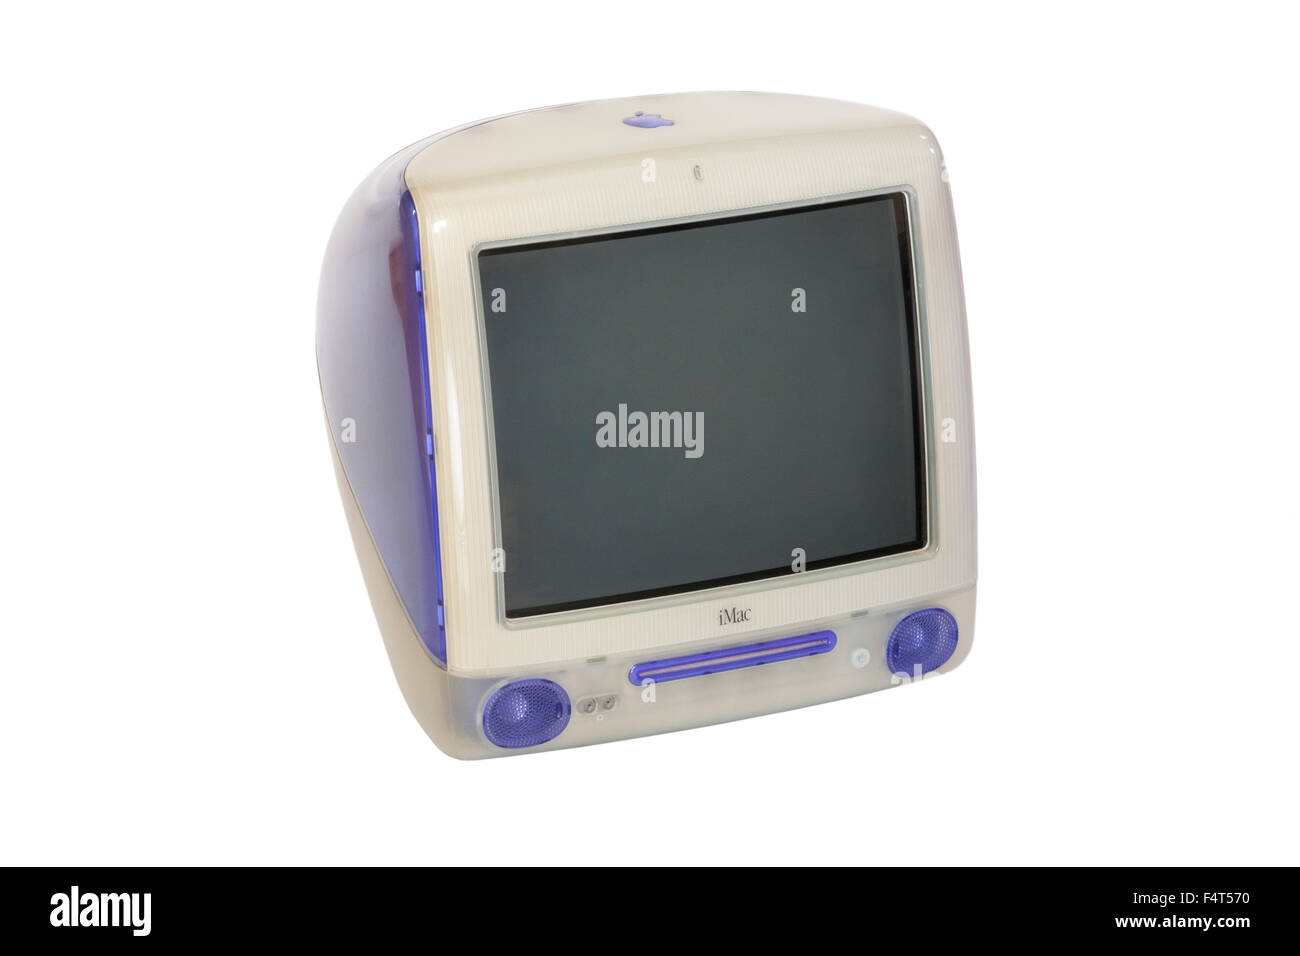 Original / old Apple iMac personal desk top computer Power PC G3 model with CRT type screen, late 1990's model - Stock Image